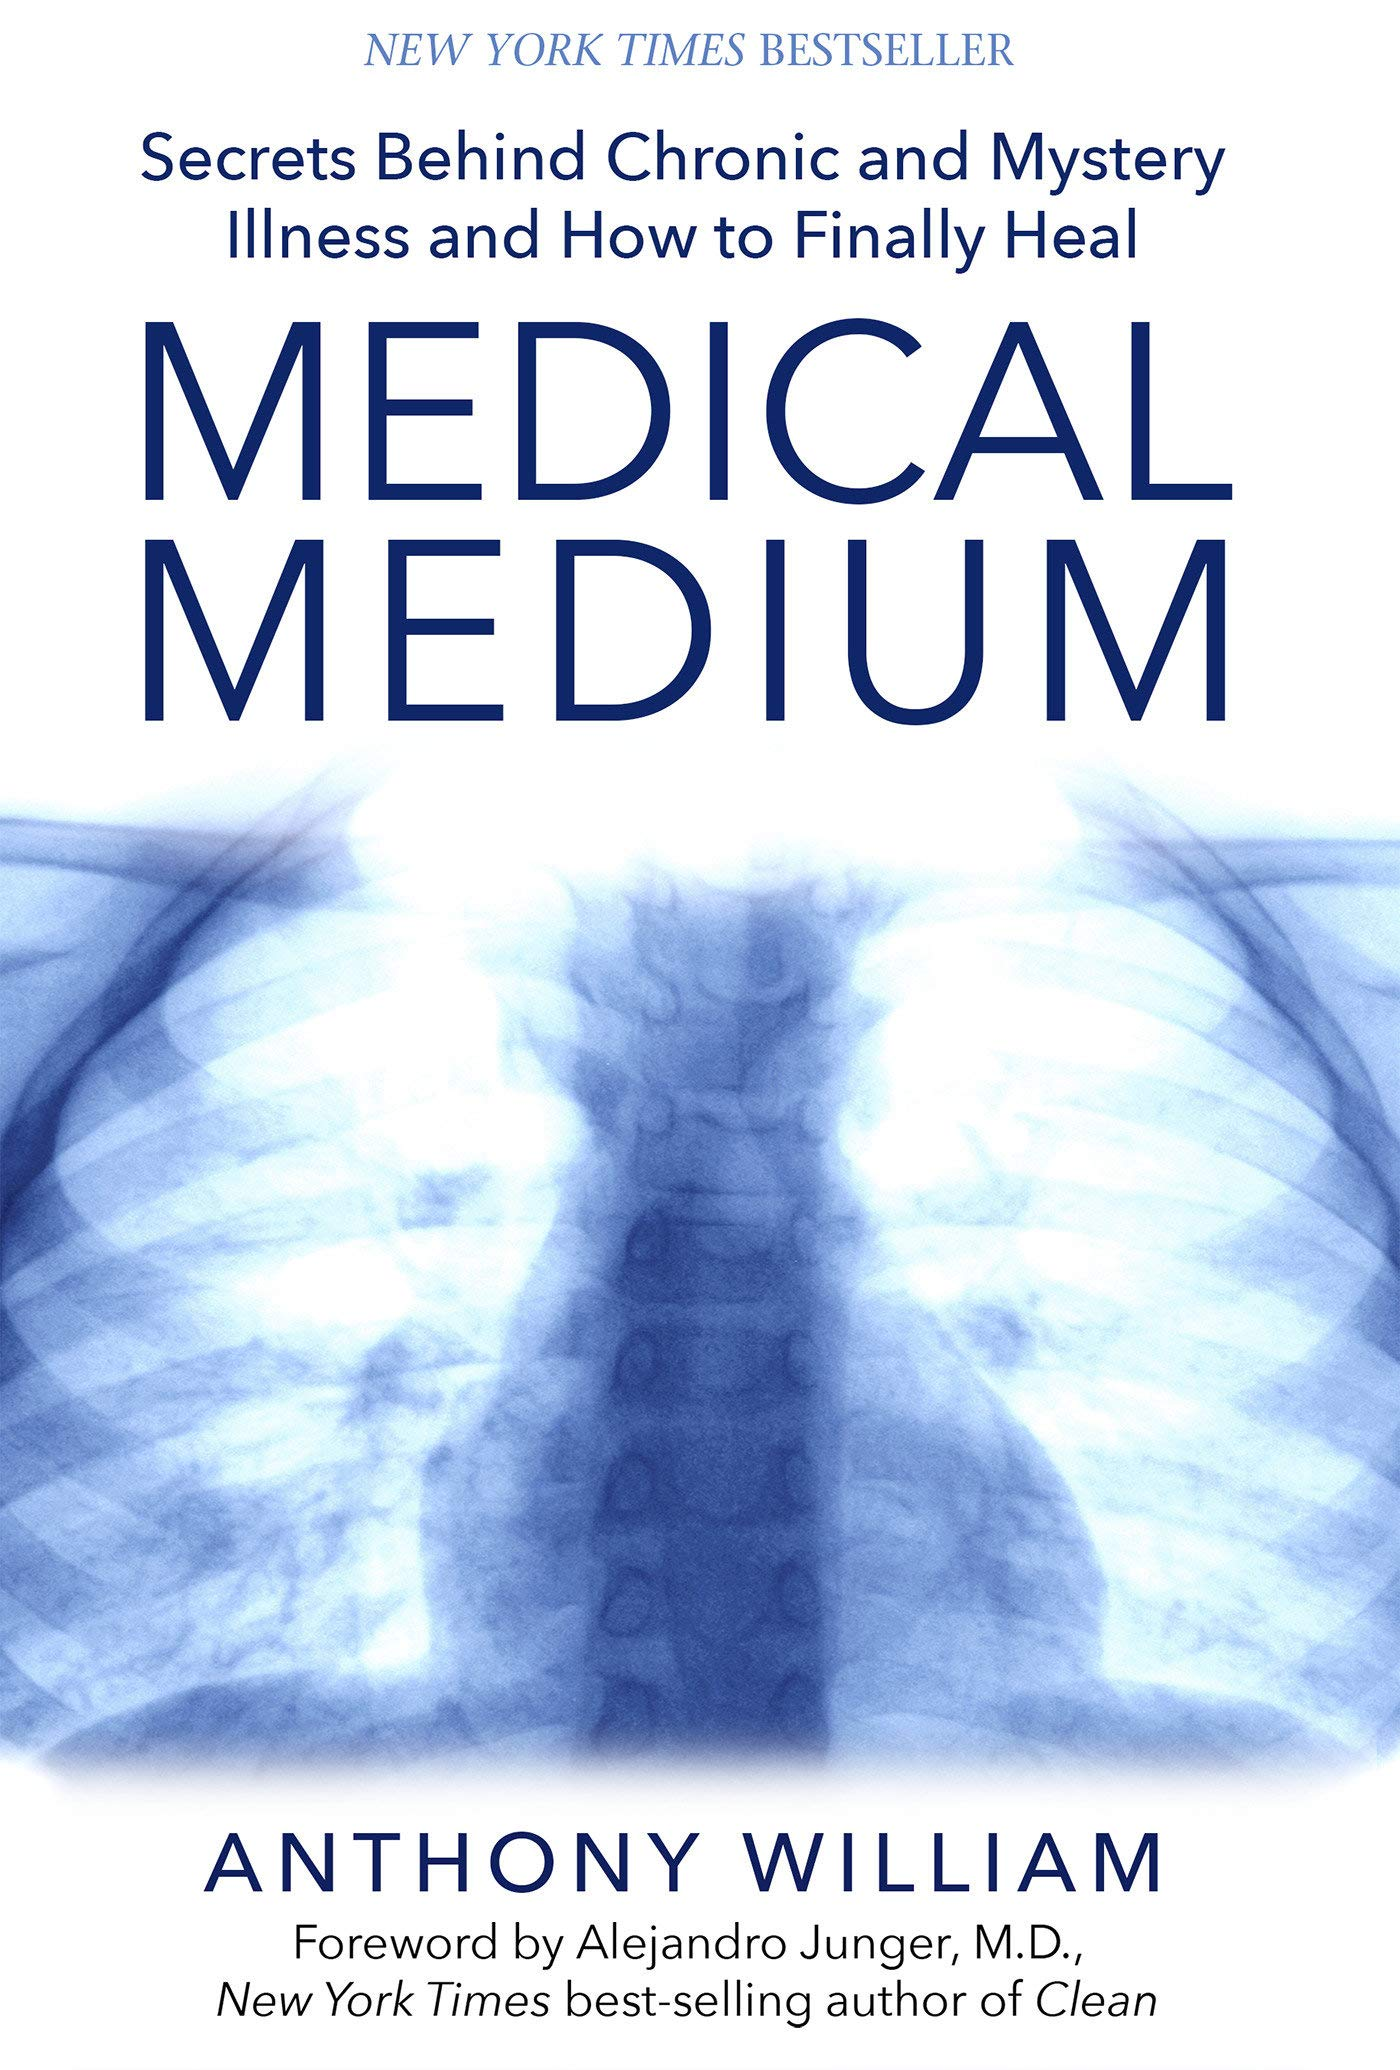 Medical Medium: Secrets Behind Chronic and Mystery Illness and How to Finally Heal - Anthony William